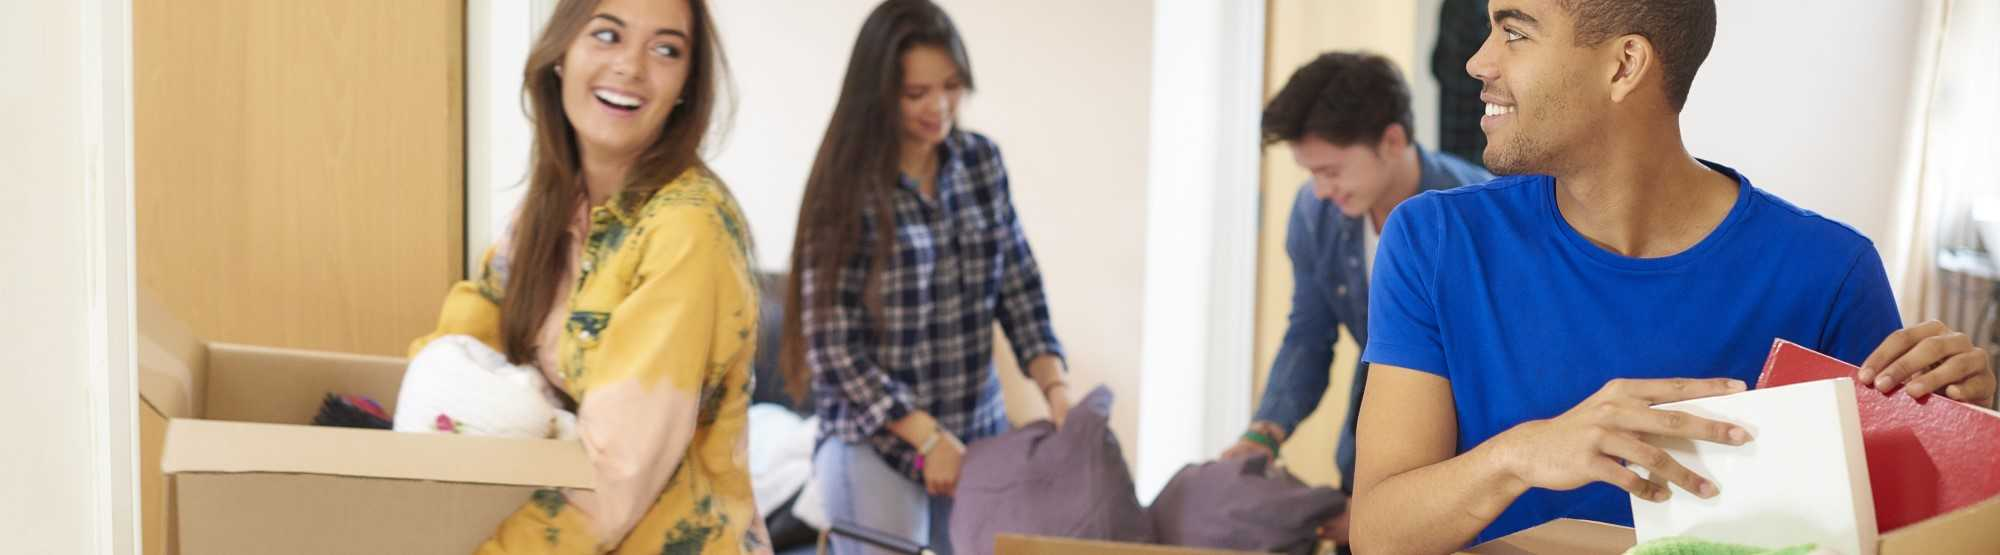 Student Storage - Moving Services